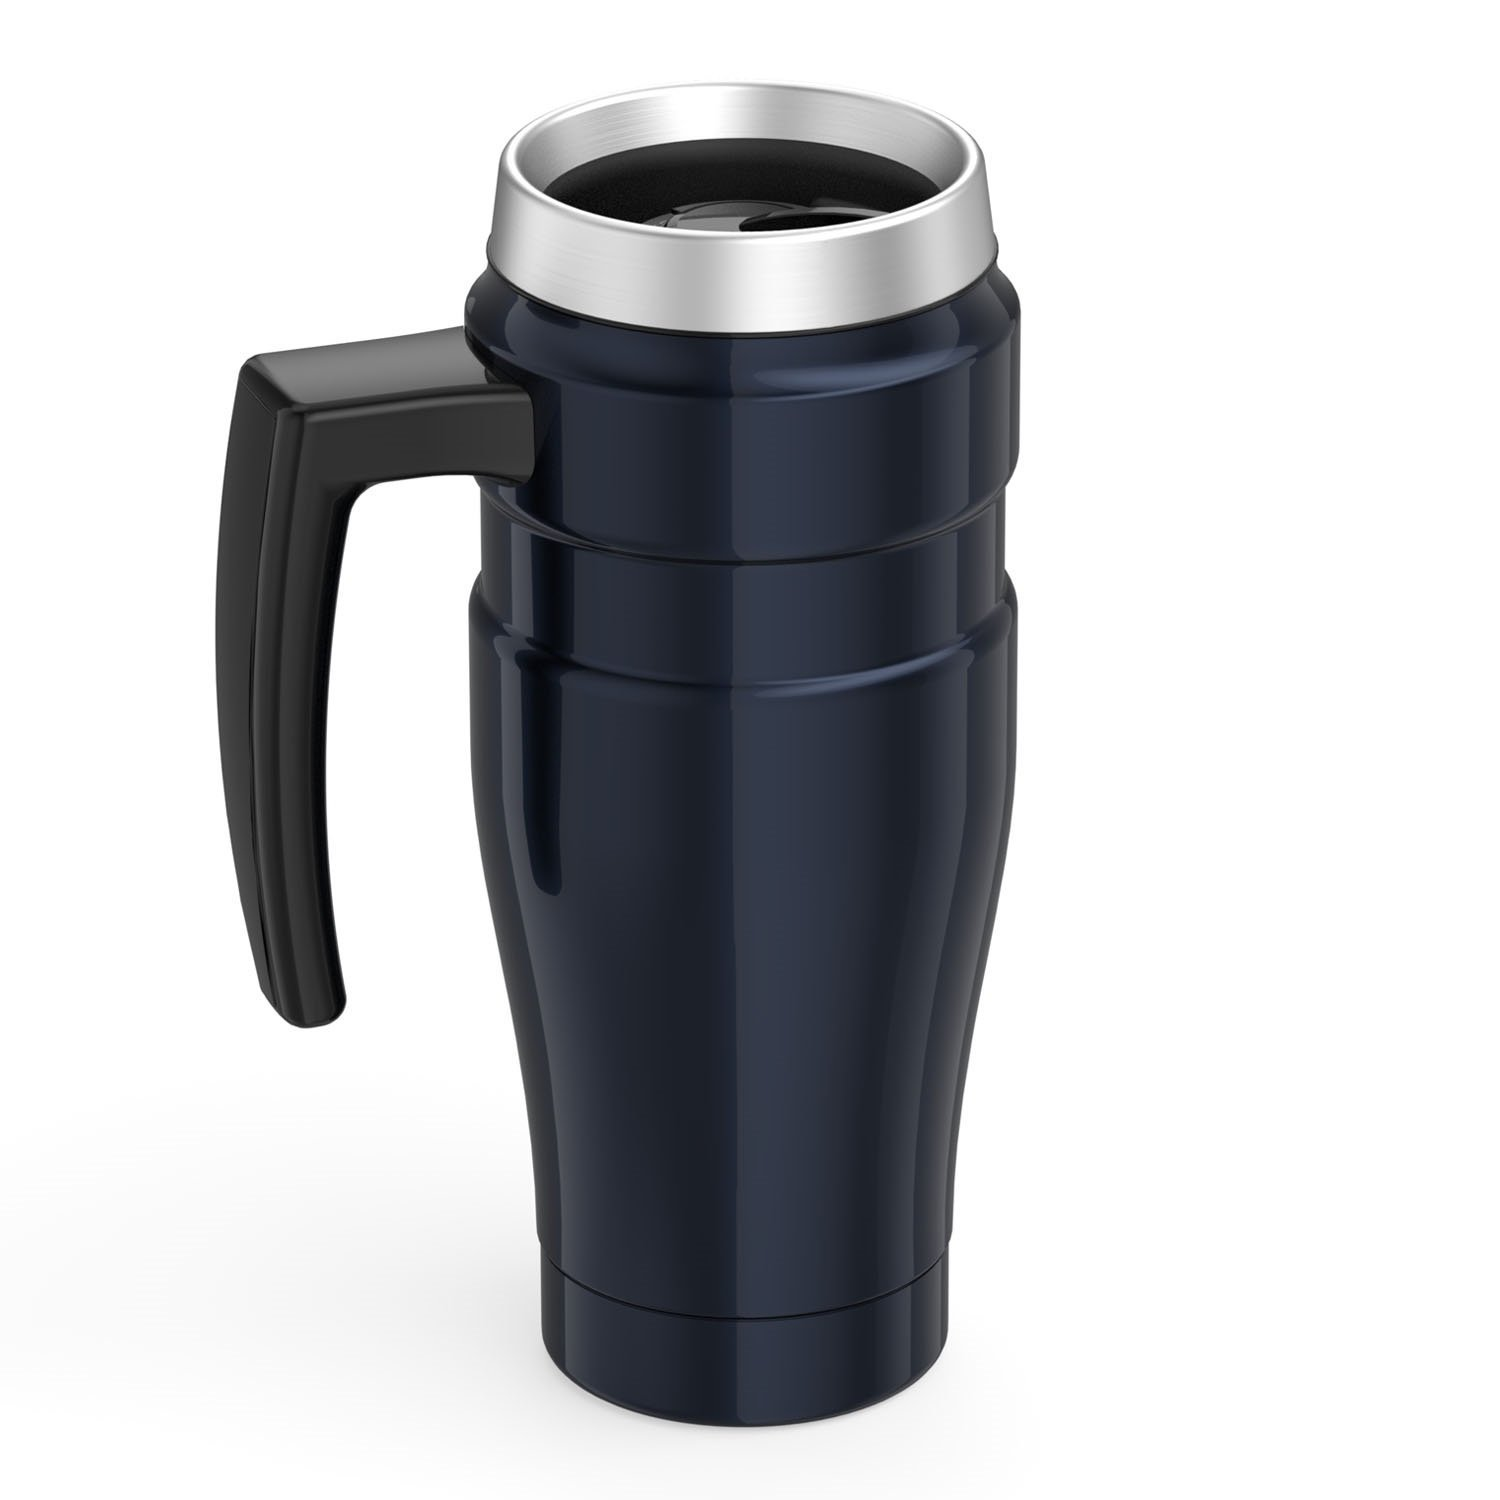 Thermos Stainless King 16 Ounce Travel Mug with Handle, Midnight Blue by Thermos (Image #4)